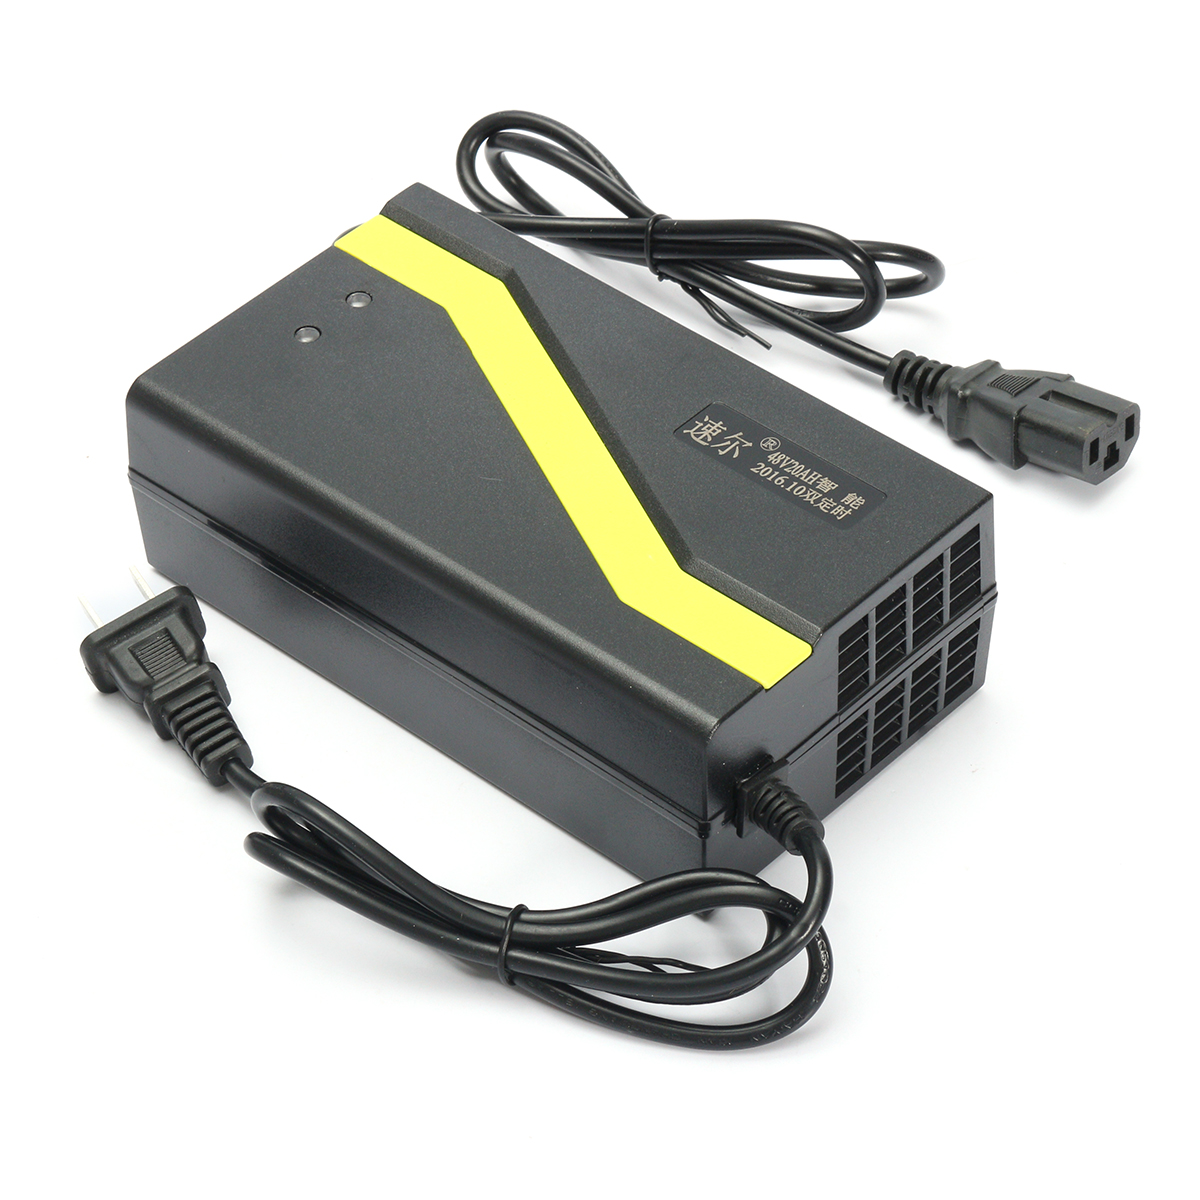 Buy 48V 1.8-5A Li-ion Lead Acid Battery Charger Ebike Scooter Electric Bike Bicycle